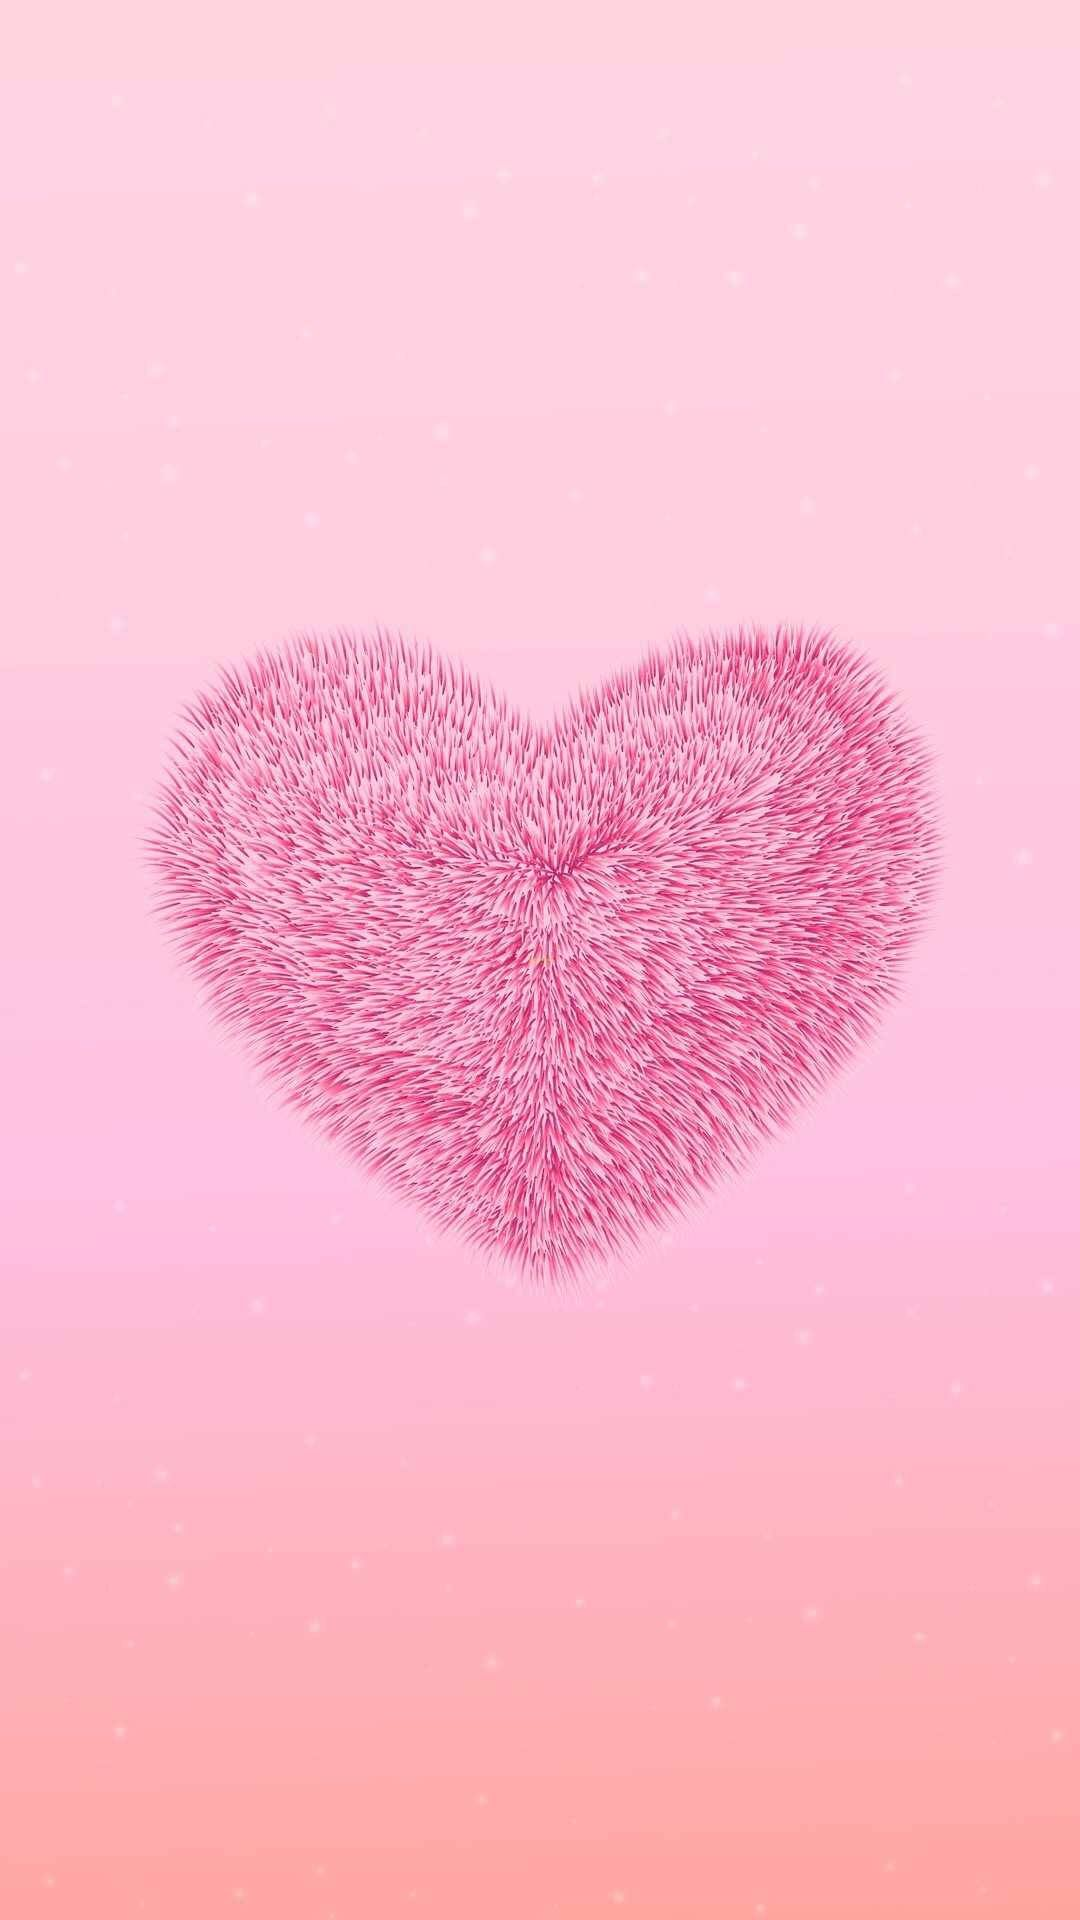 Fuzzy Heart Pink Wallpaper Backgrounds Pink Wallpaper Iphone Cute Wallpapers